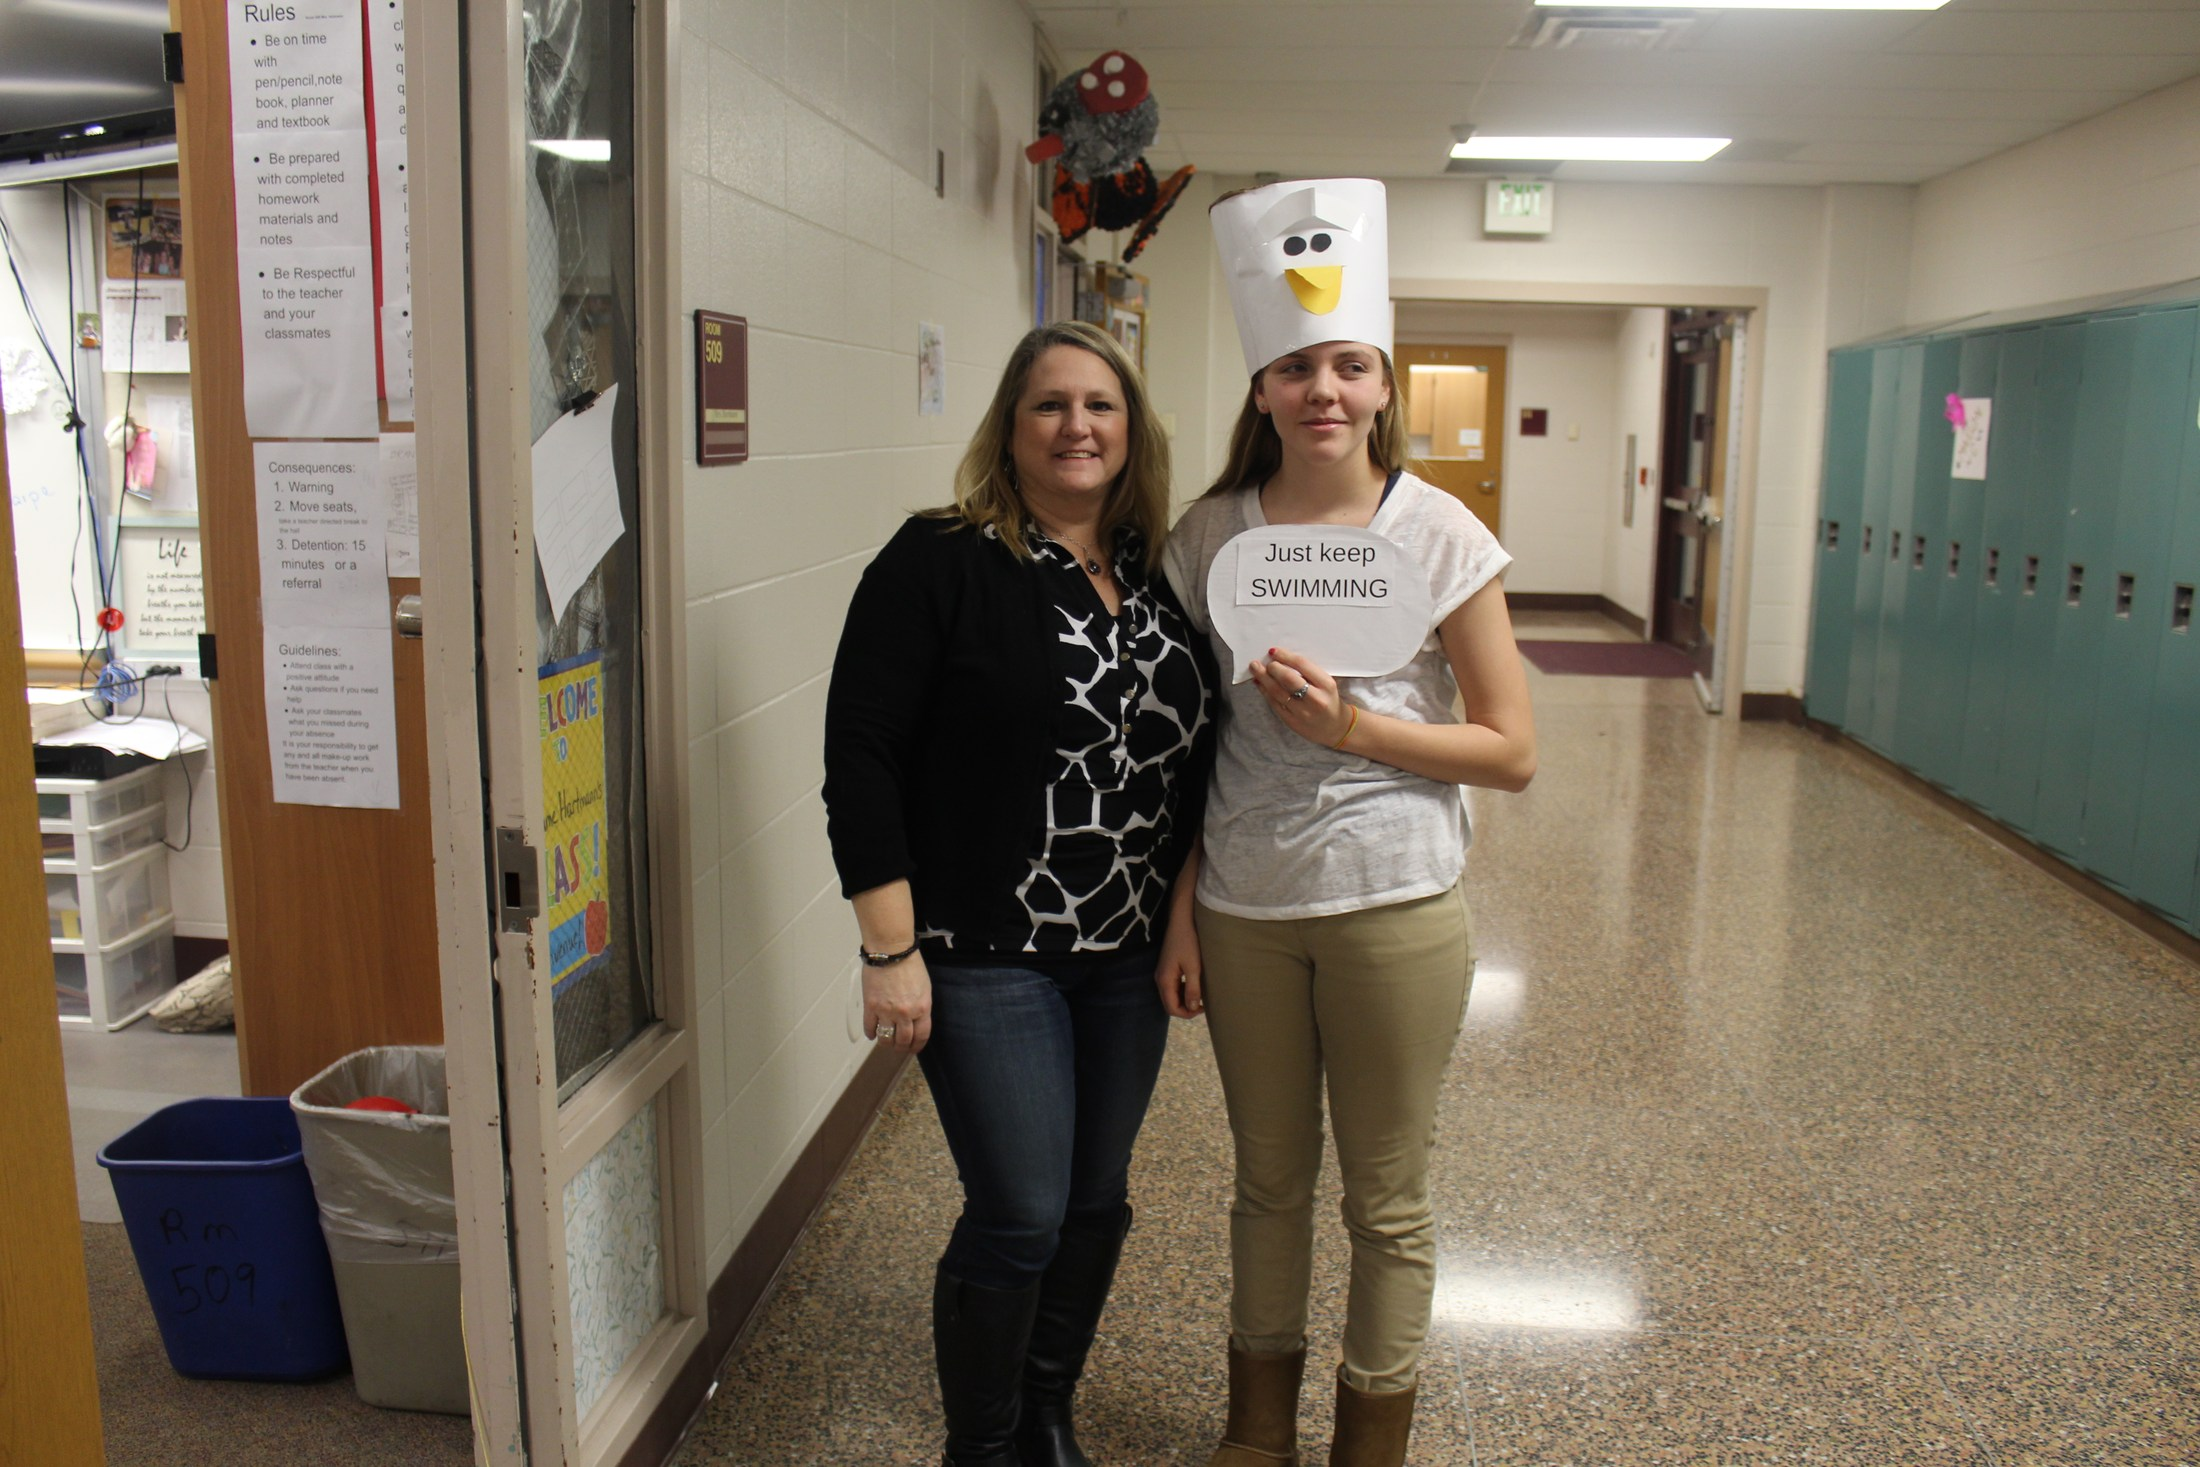 Mrs Baumgartner and student on homecoming dress up day